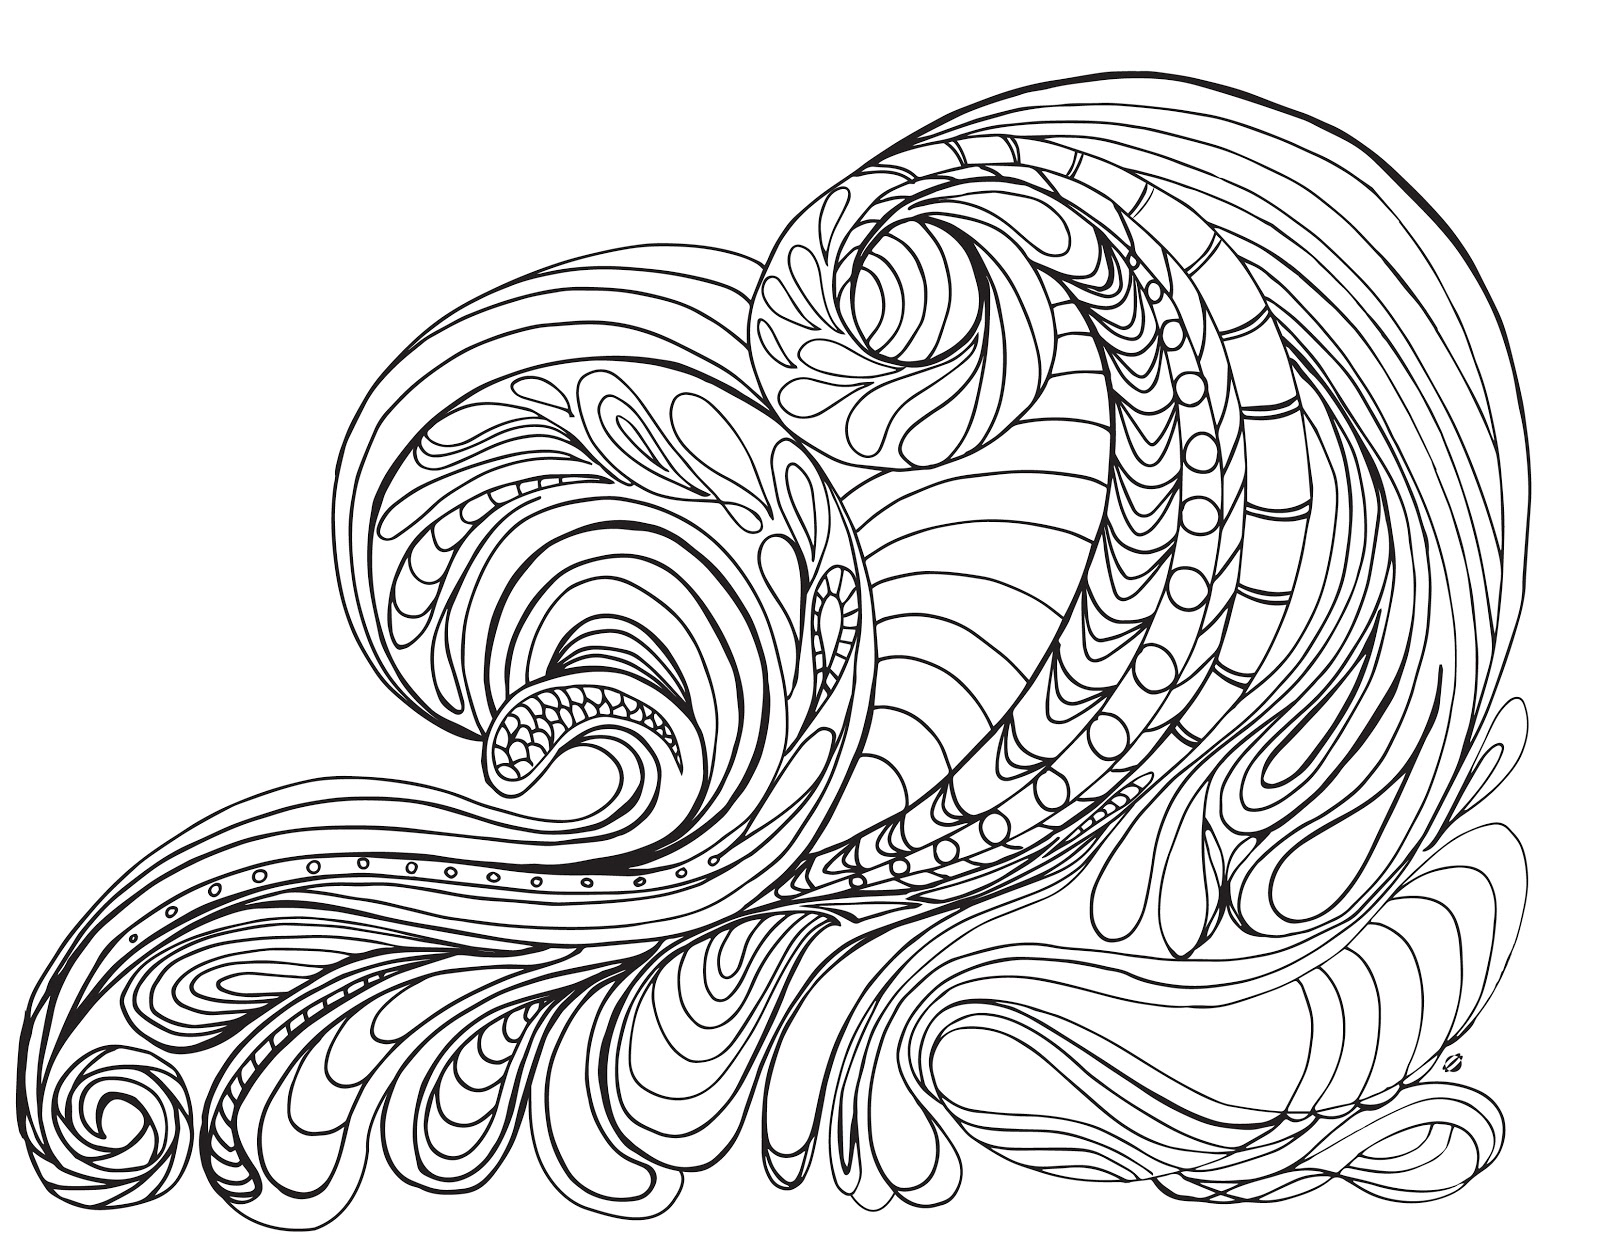 1600x1236 Ocean Colorings For Adults On Waves The Coloring Pages Printable